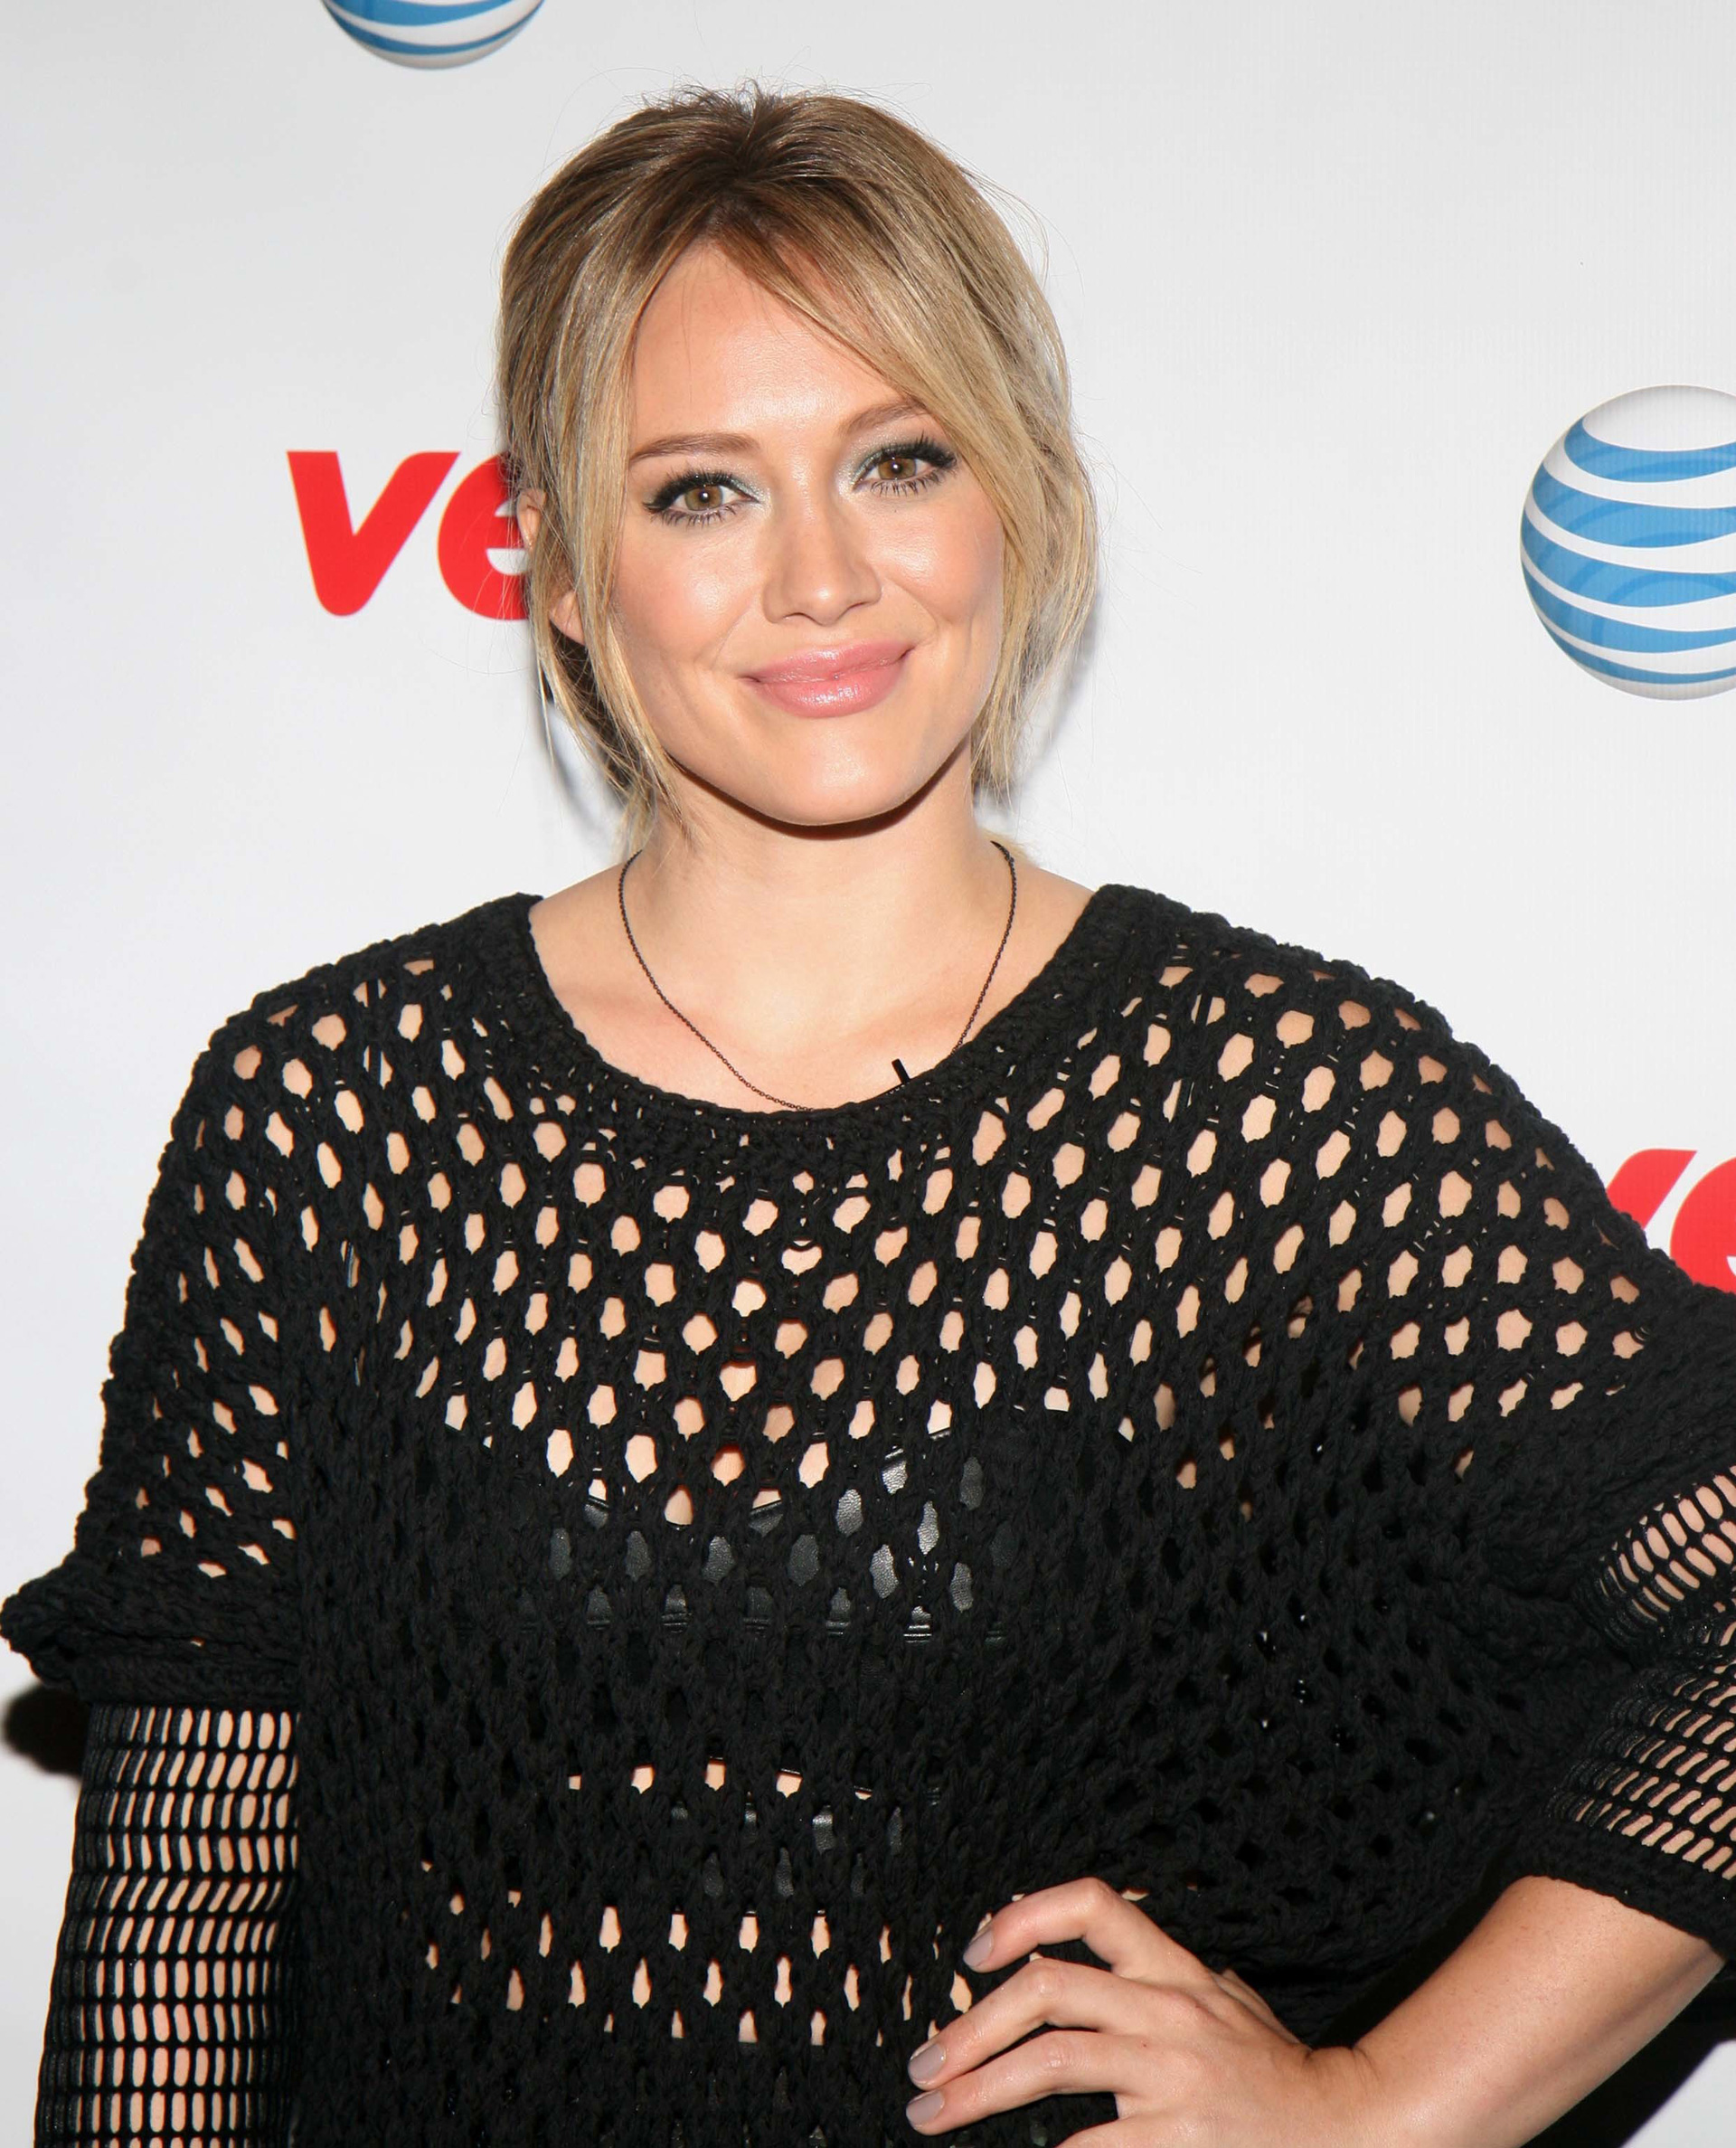 Best sparkly eye makeup: Hillary Duff